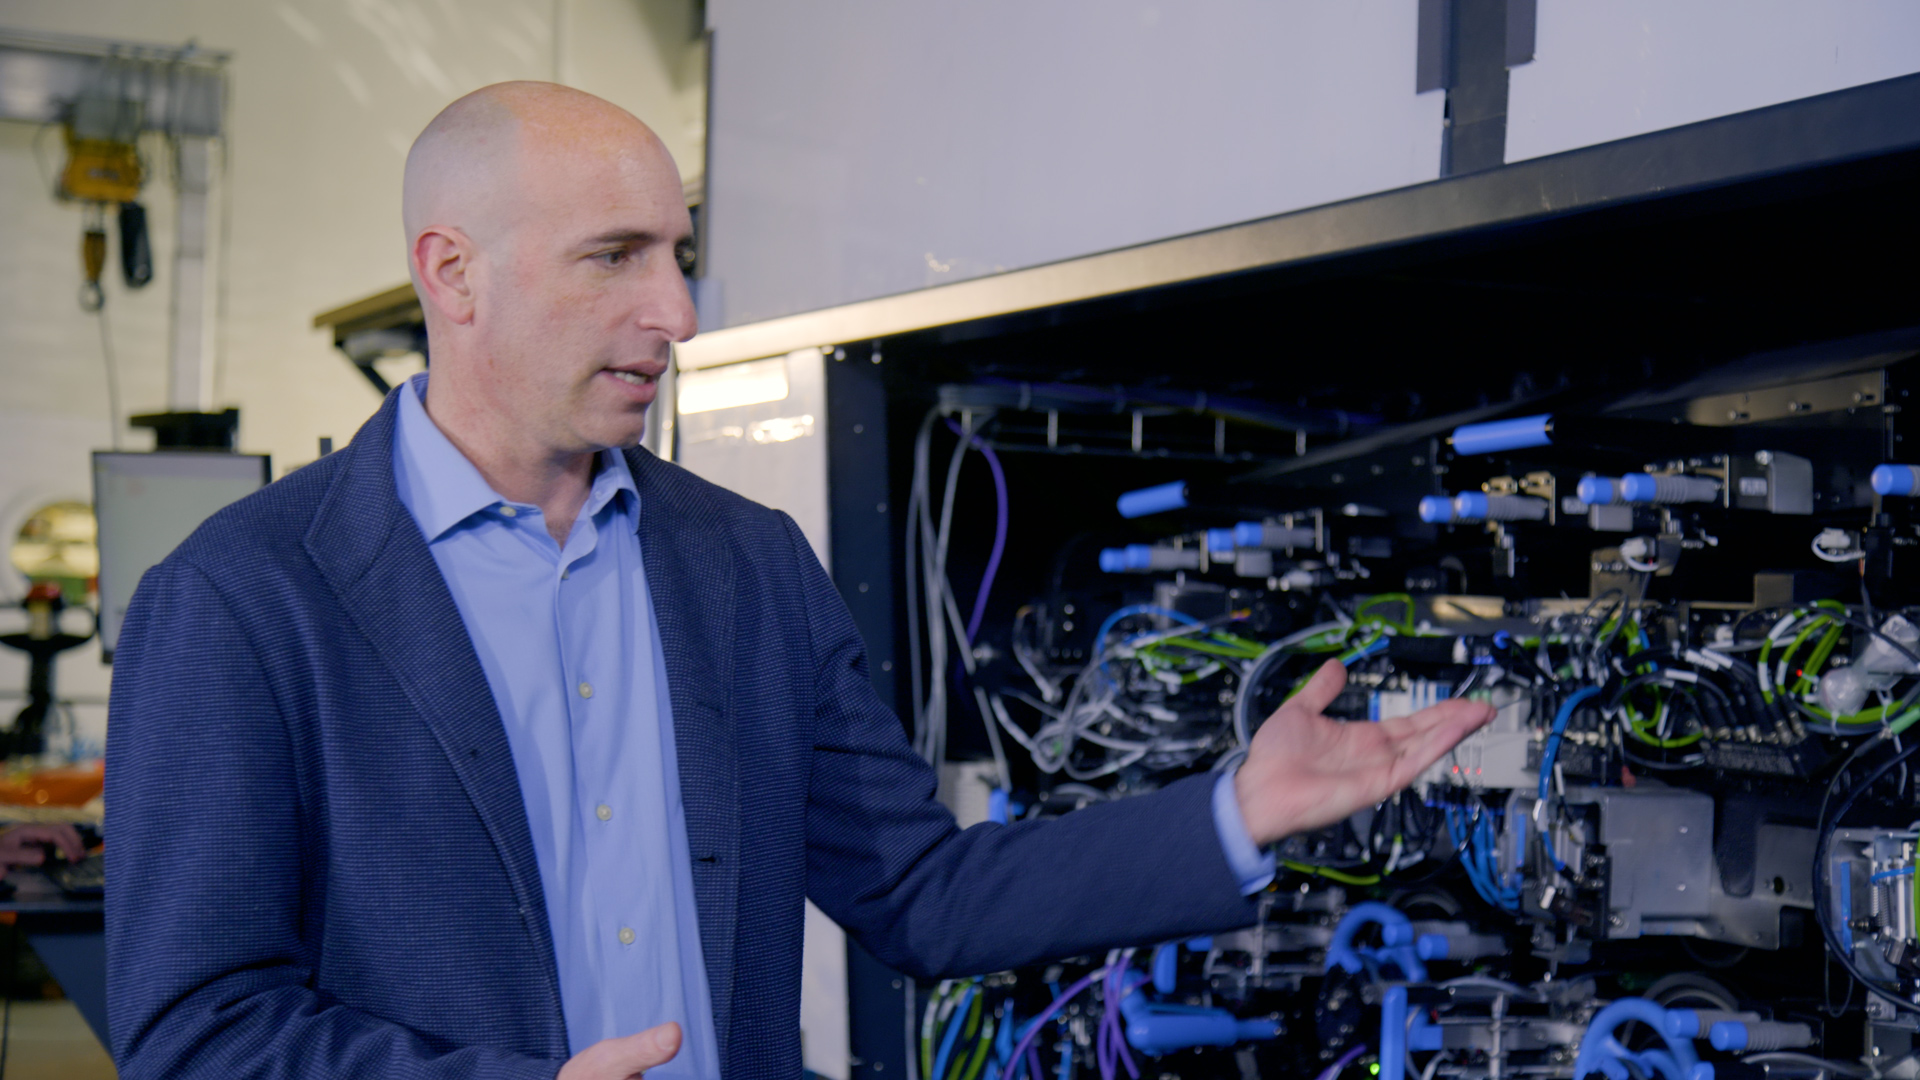 Video preview: Golan Landsberg on the New HP Indigo LEPX Architecture